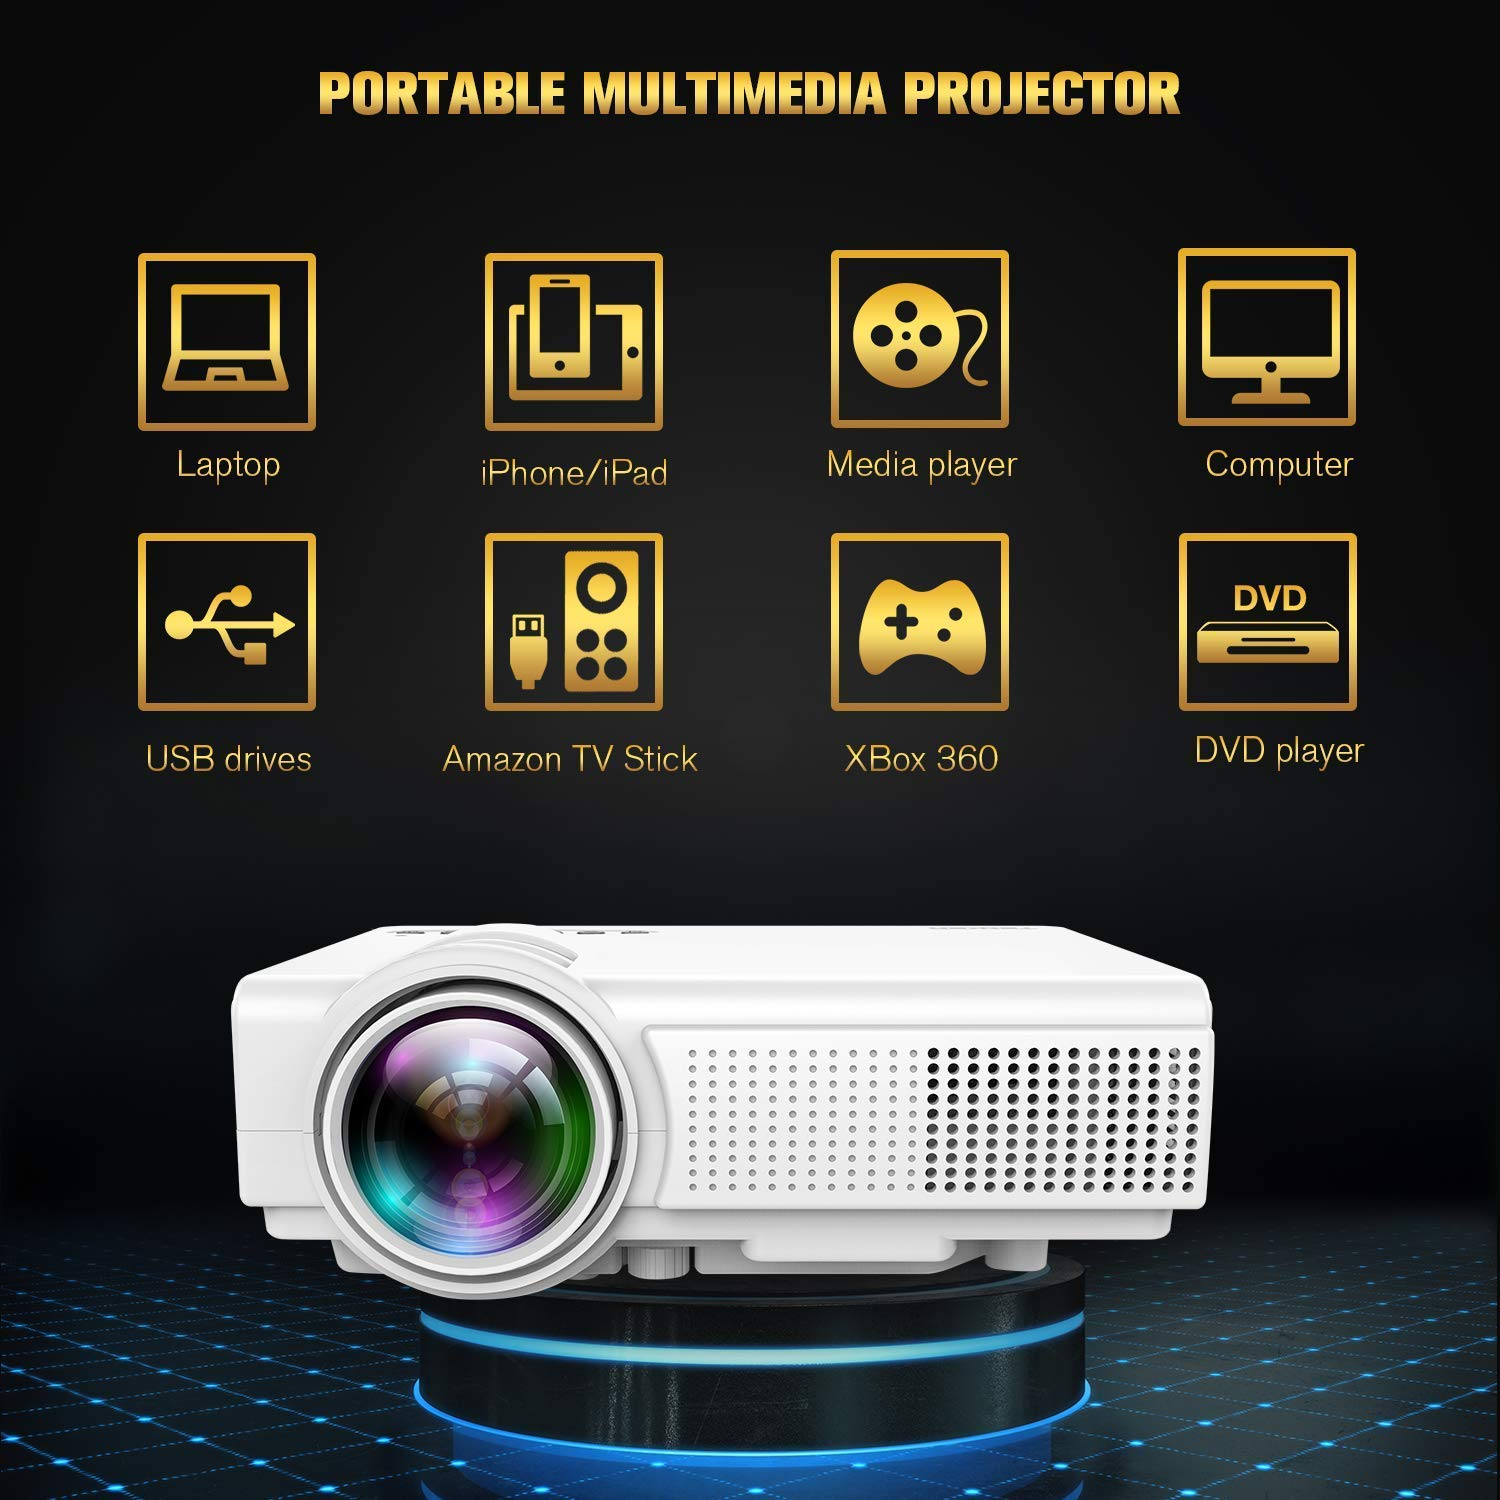 TENKER Upgrade Lumens Q5 Mini Projector, with Big Display LED Full HD Video Projector, Compatible with 1080p HDMI, Fire TV Stick, VGA, USB, AV for Home Theater Entertainment, Party and Games (White) by TENKER (Image #7)